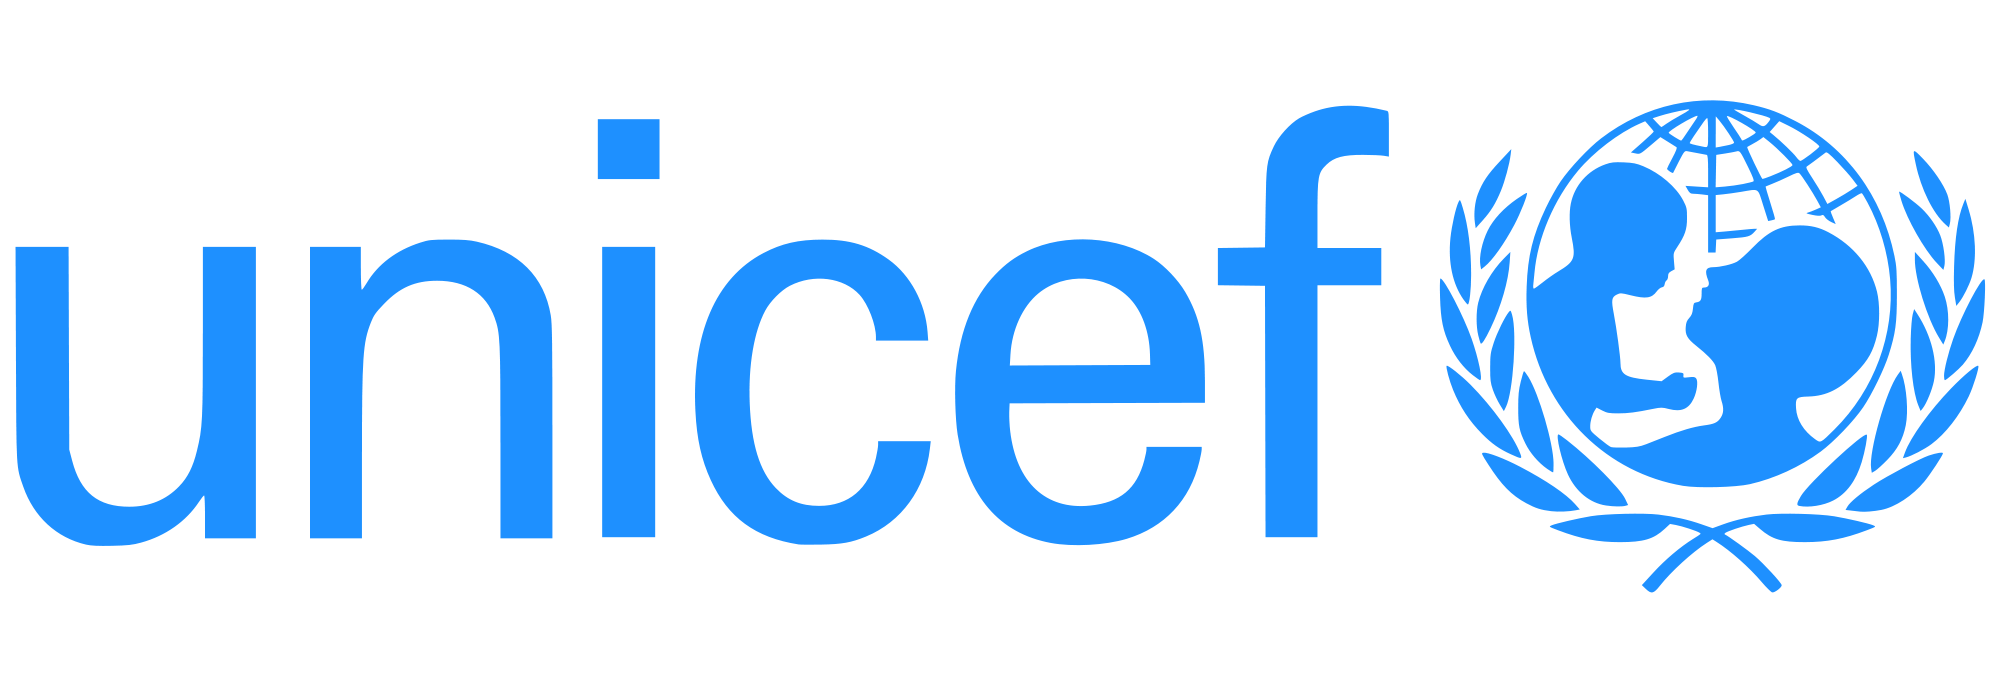 Unicef Logo And Symbol Meaning History Png